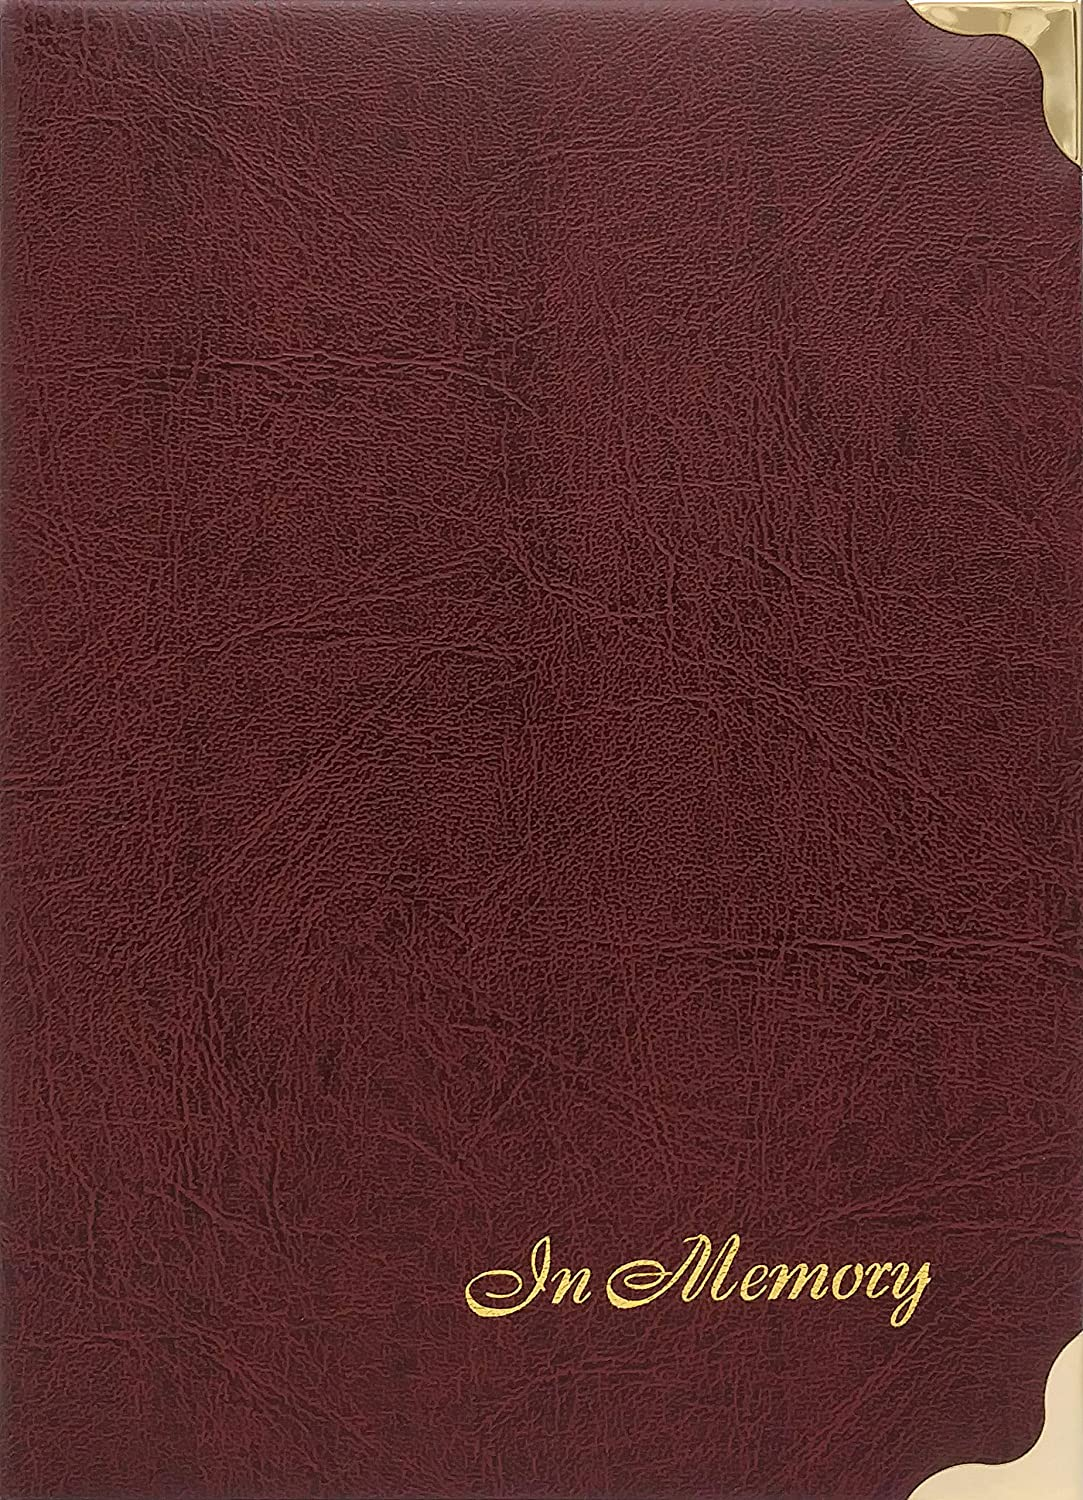 in Memory Funeral Guest Book, Visitor Registration, Condolence & Memorial Book, 7.25x10 inches, Brass Ring Binder (45) Removable Pages - Maroon